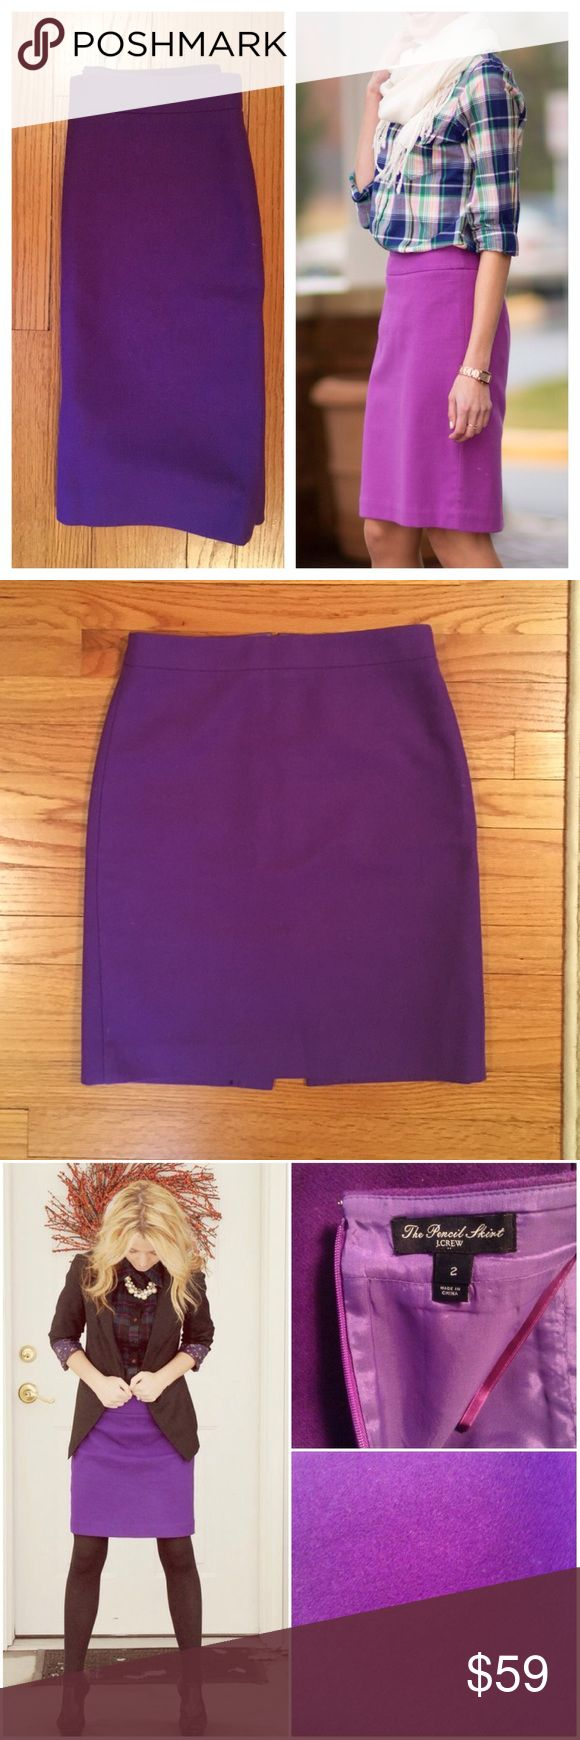 J. Crew No. 2 Pencil Skirt Classic pencil skirt in punchy purple. Wool blend, fully lined. Excellent condition only worn a few times. J. Crew Skirts Pencil